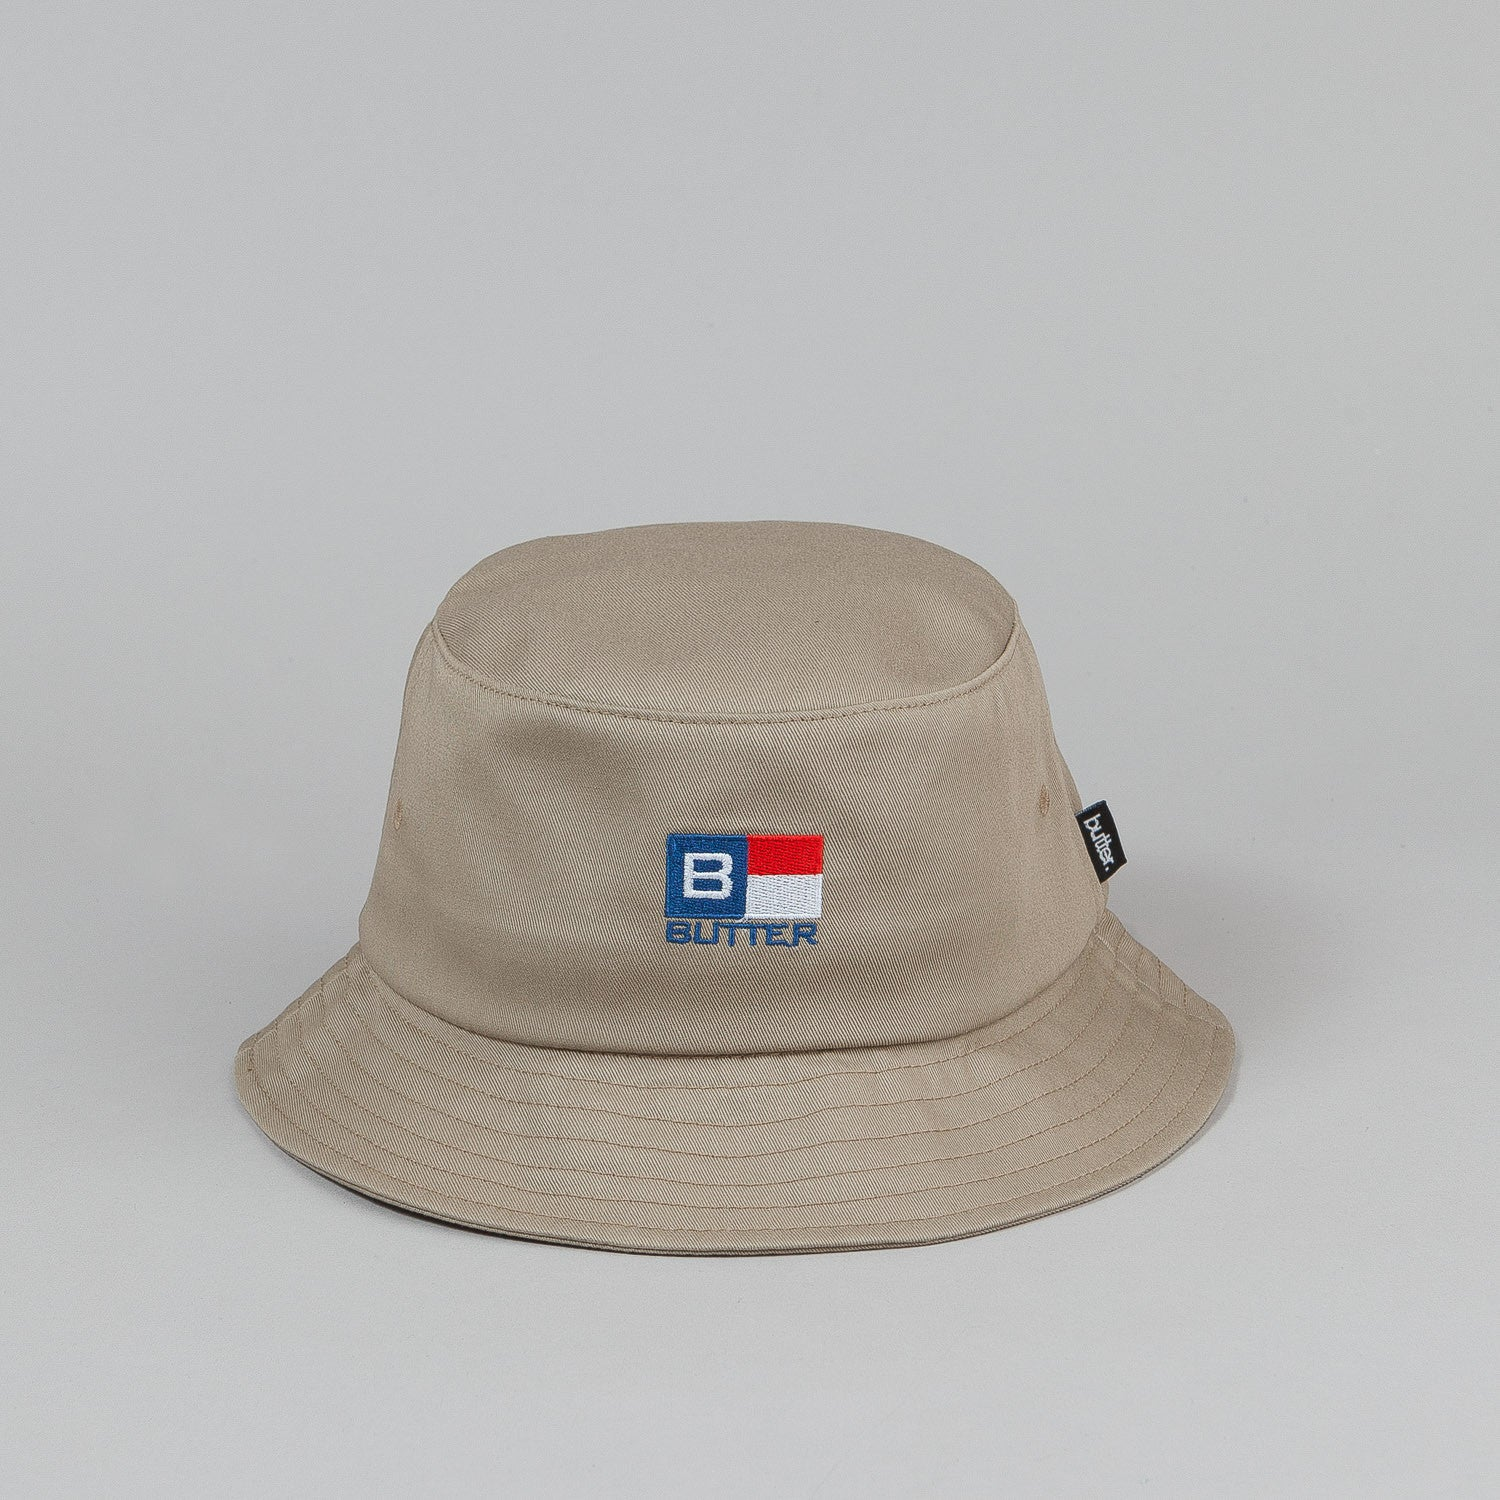 Butter Goods State Bucket Hat - Khaki